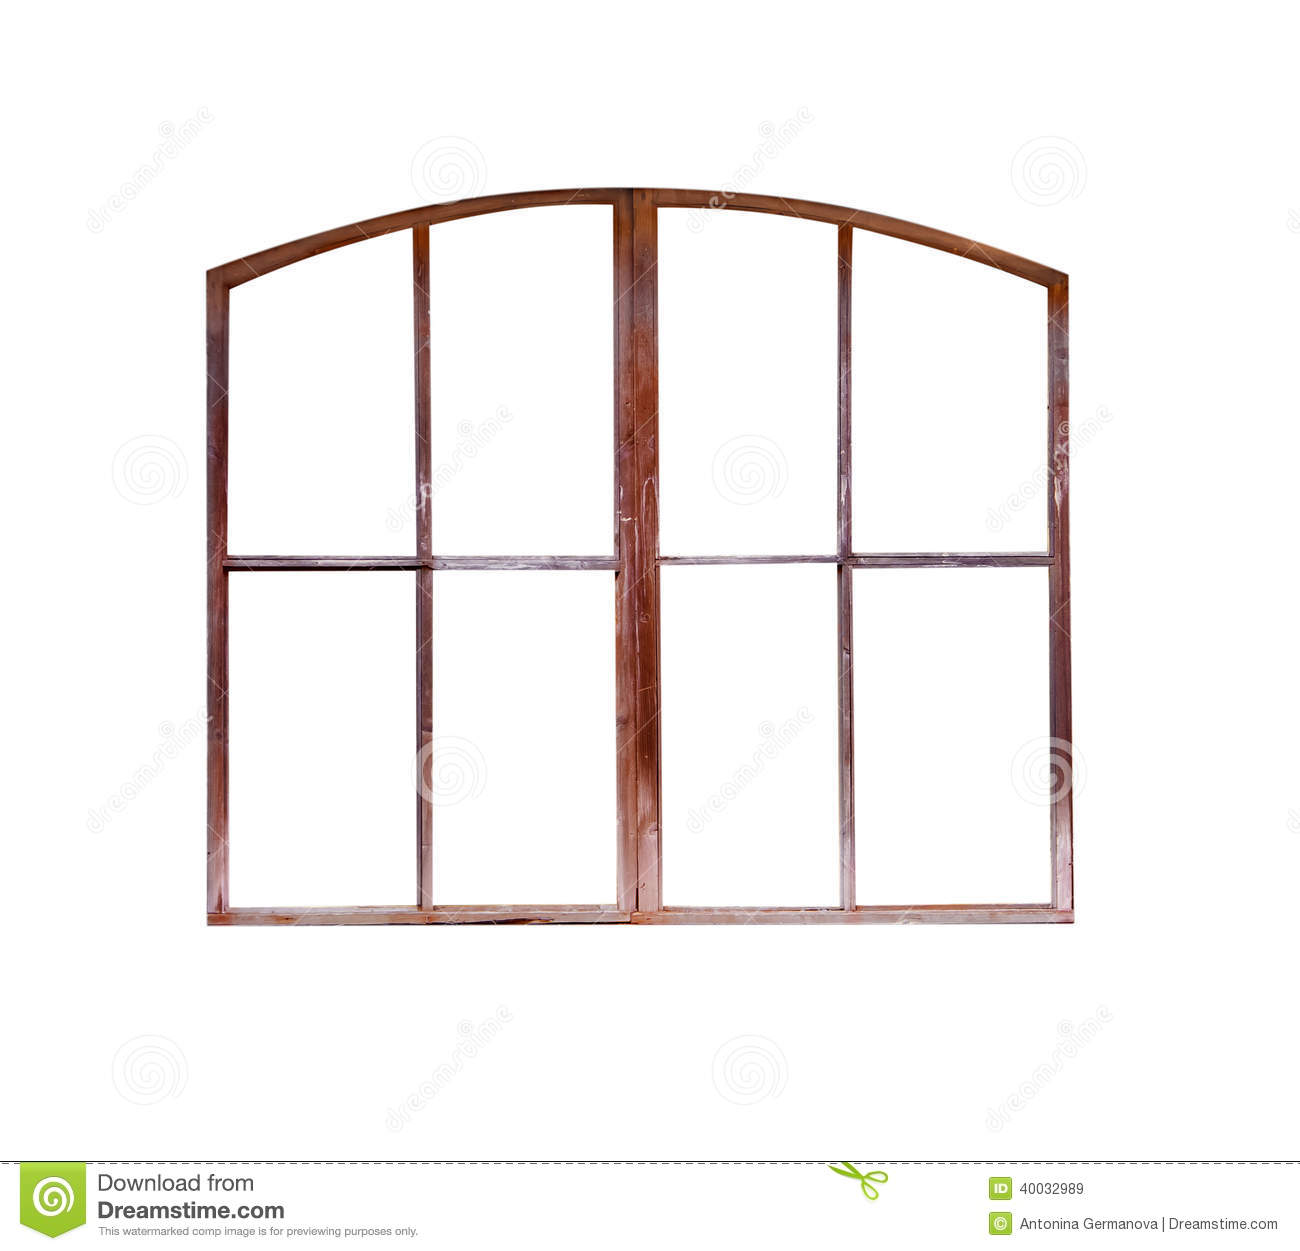 The Old Window Frame Isolated Stock Image - Image of antique, retro ...